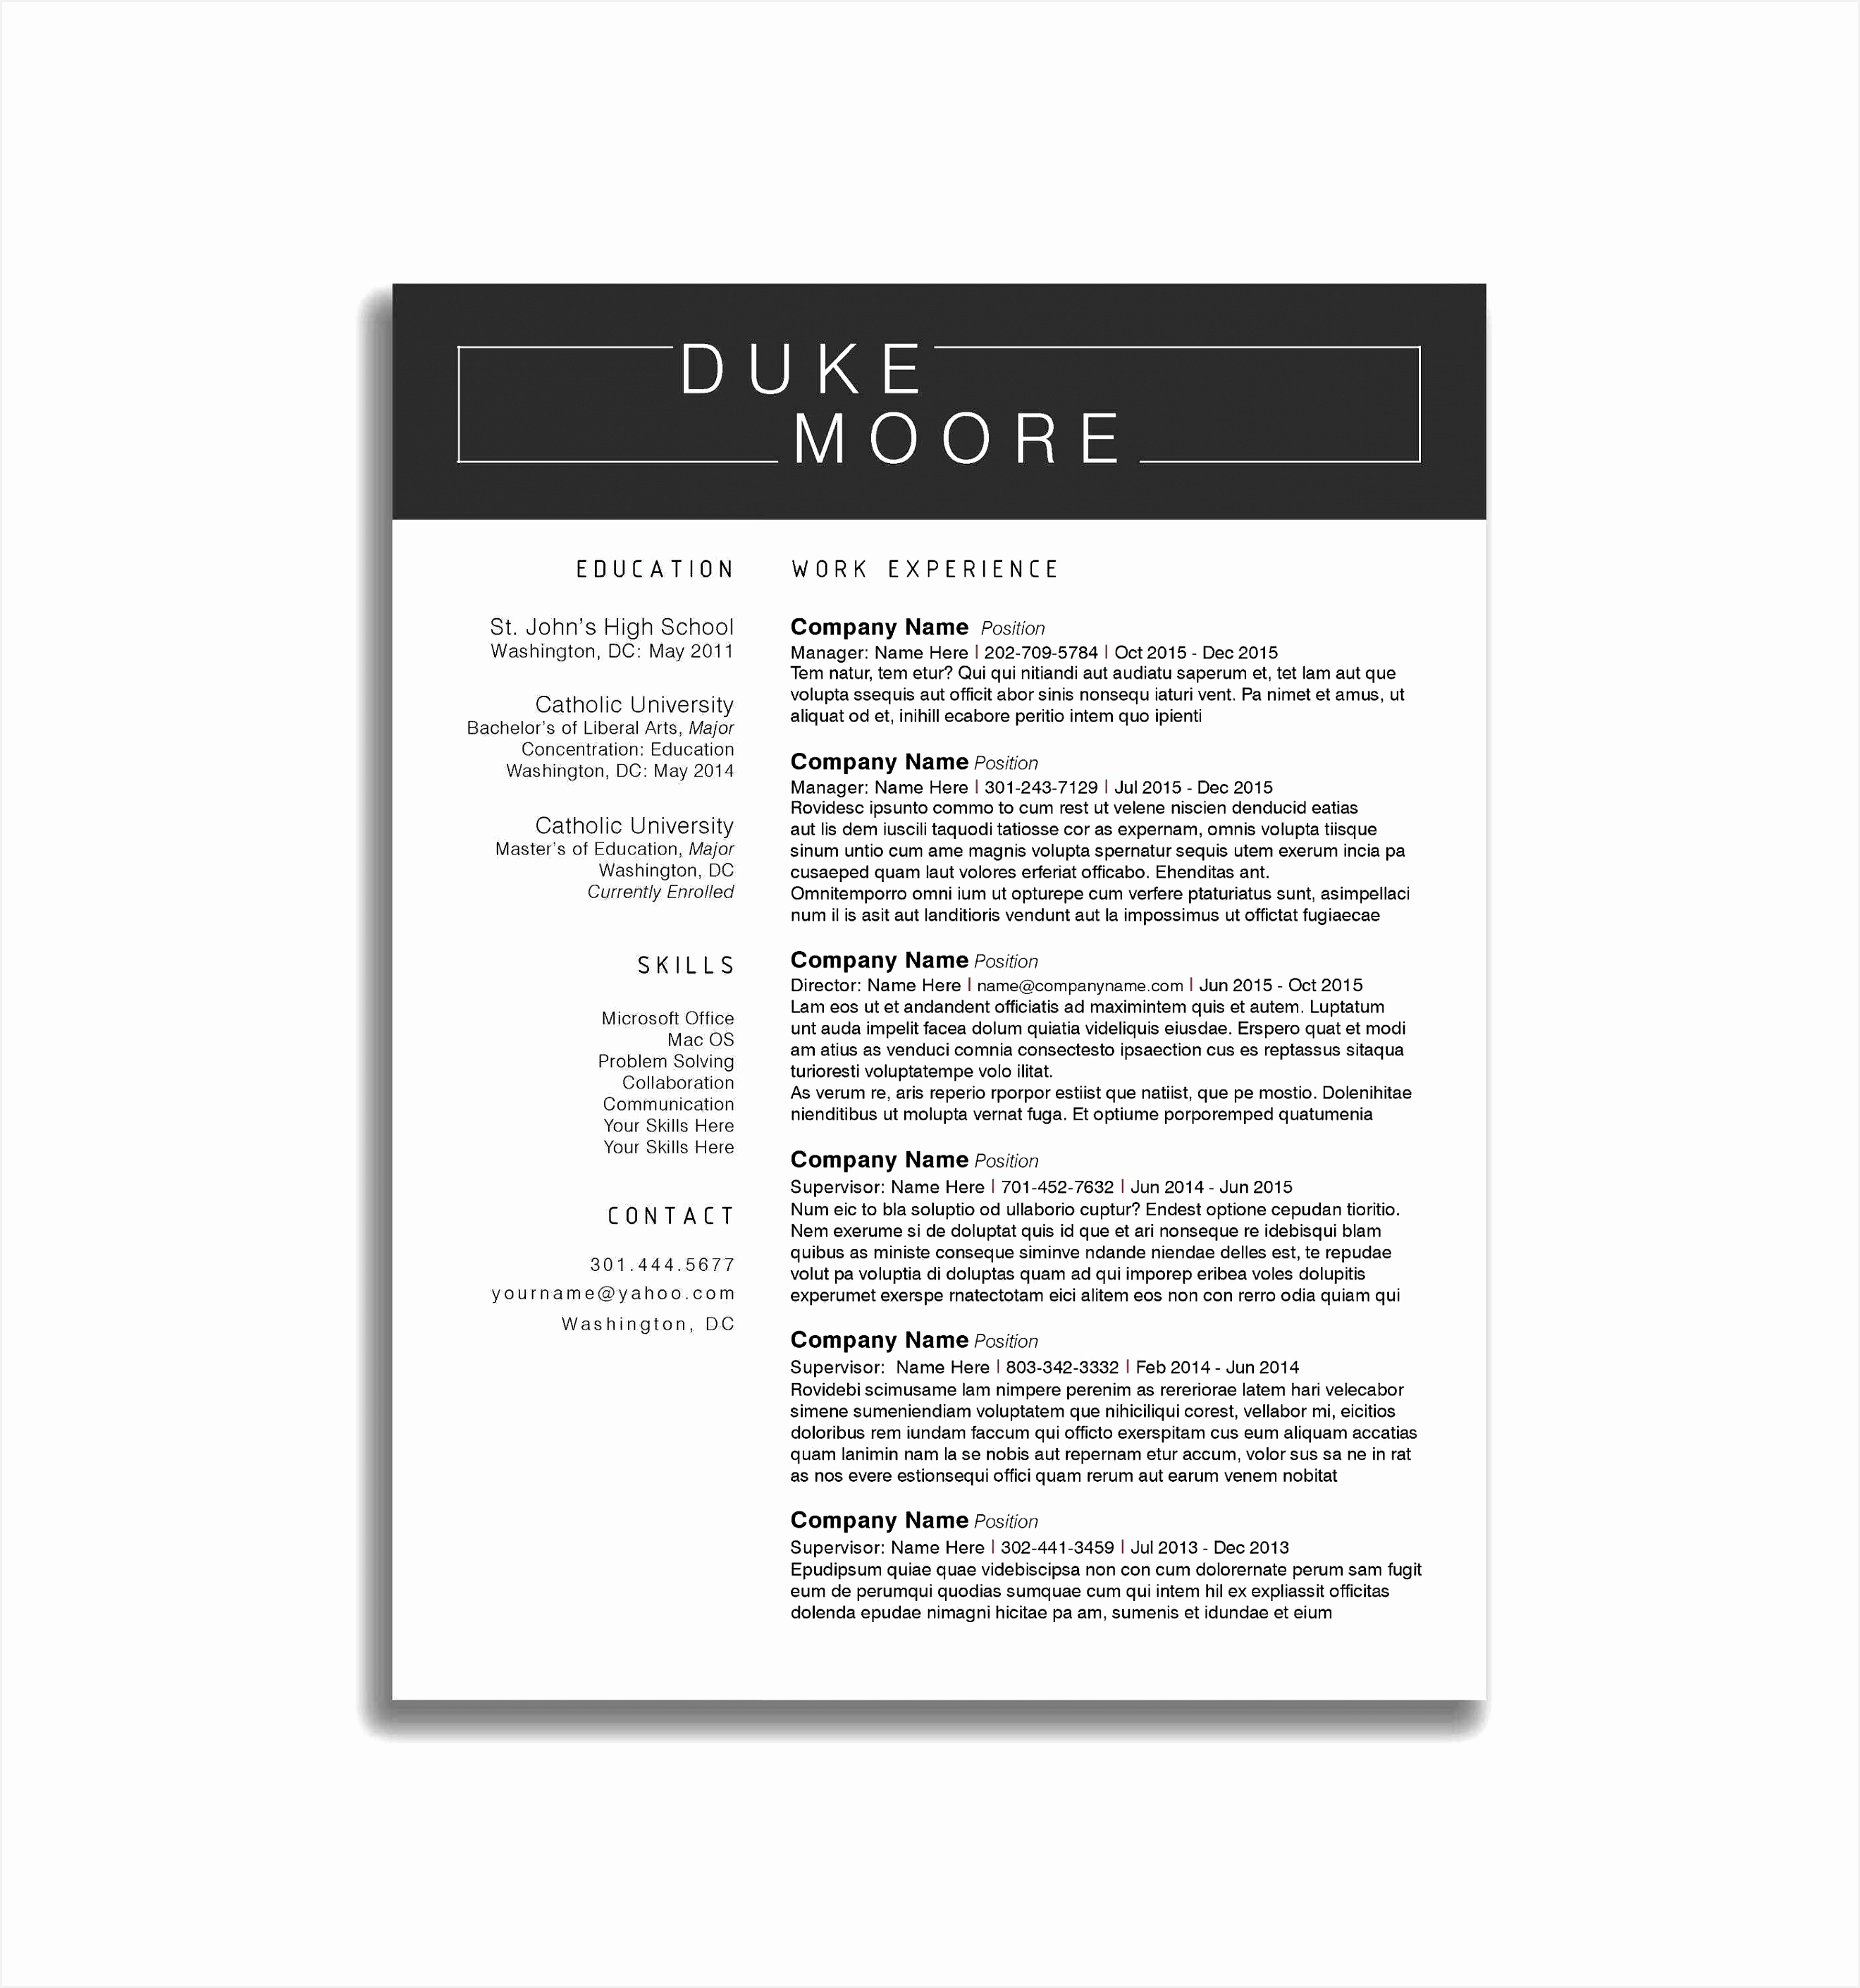 Call Center Resume Objective Wasud Lovely Example Resume Objective for Call Center Agent Awesome S Of 5 Call Center Resume Objective